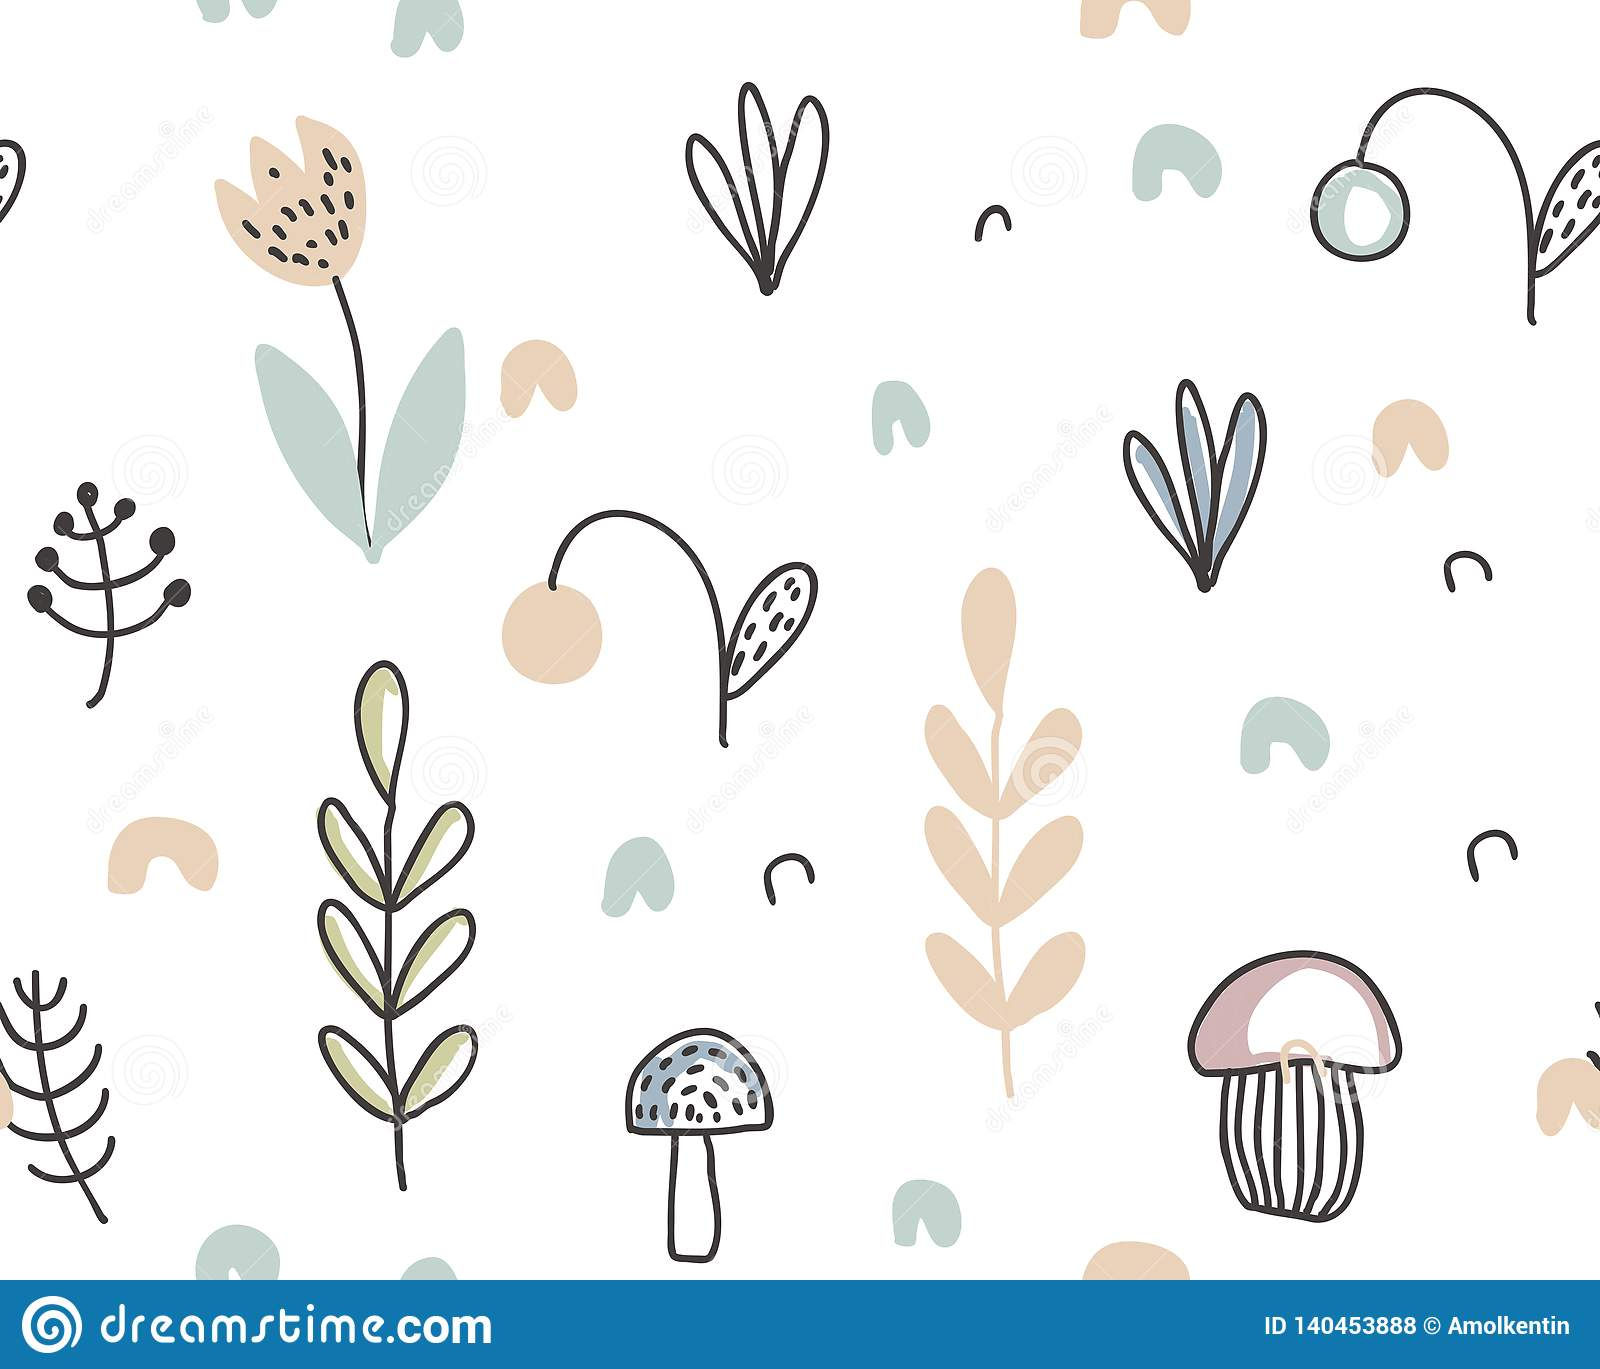 Vector seamless pattern with hand drawn berries, plants, flowers, mushrooms.